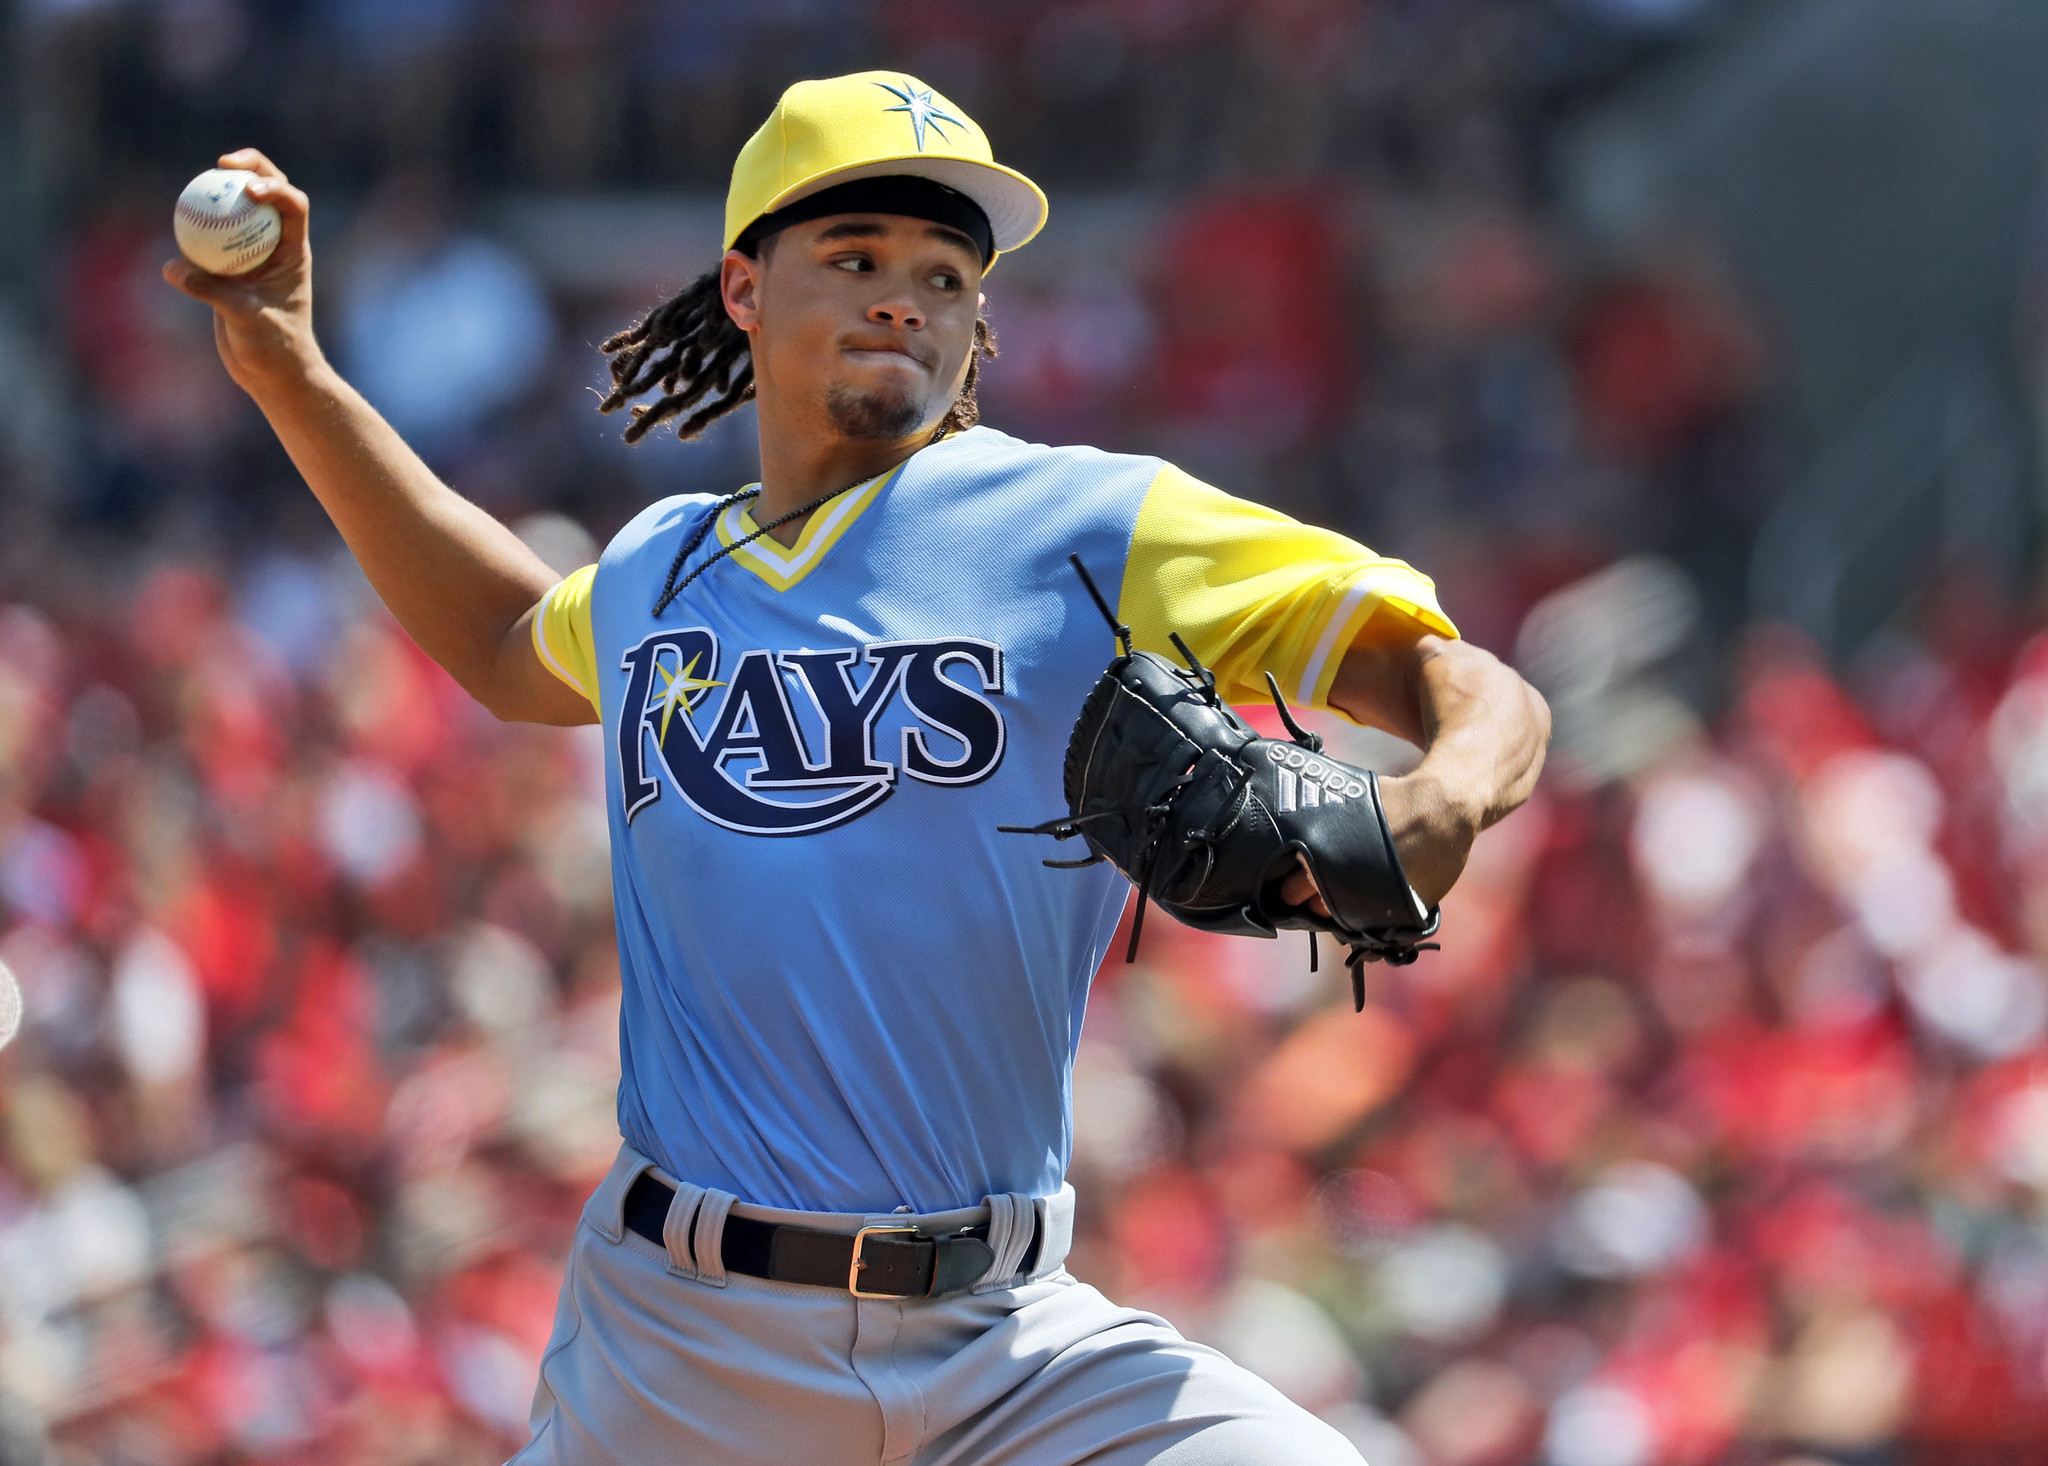 Ct-cubs-rays-series-spt-0919-20170918